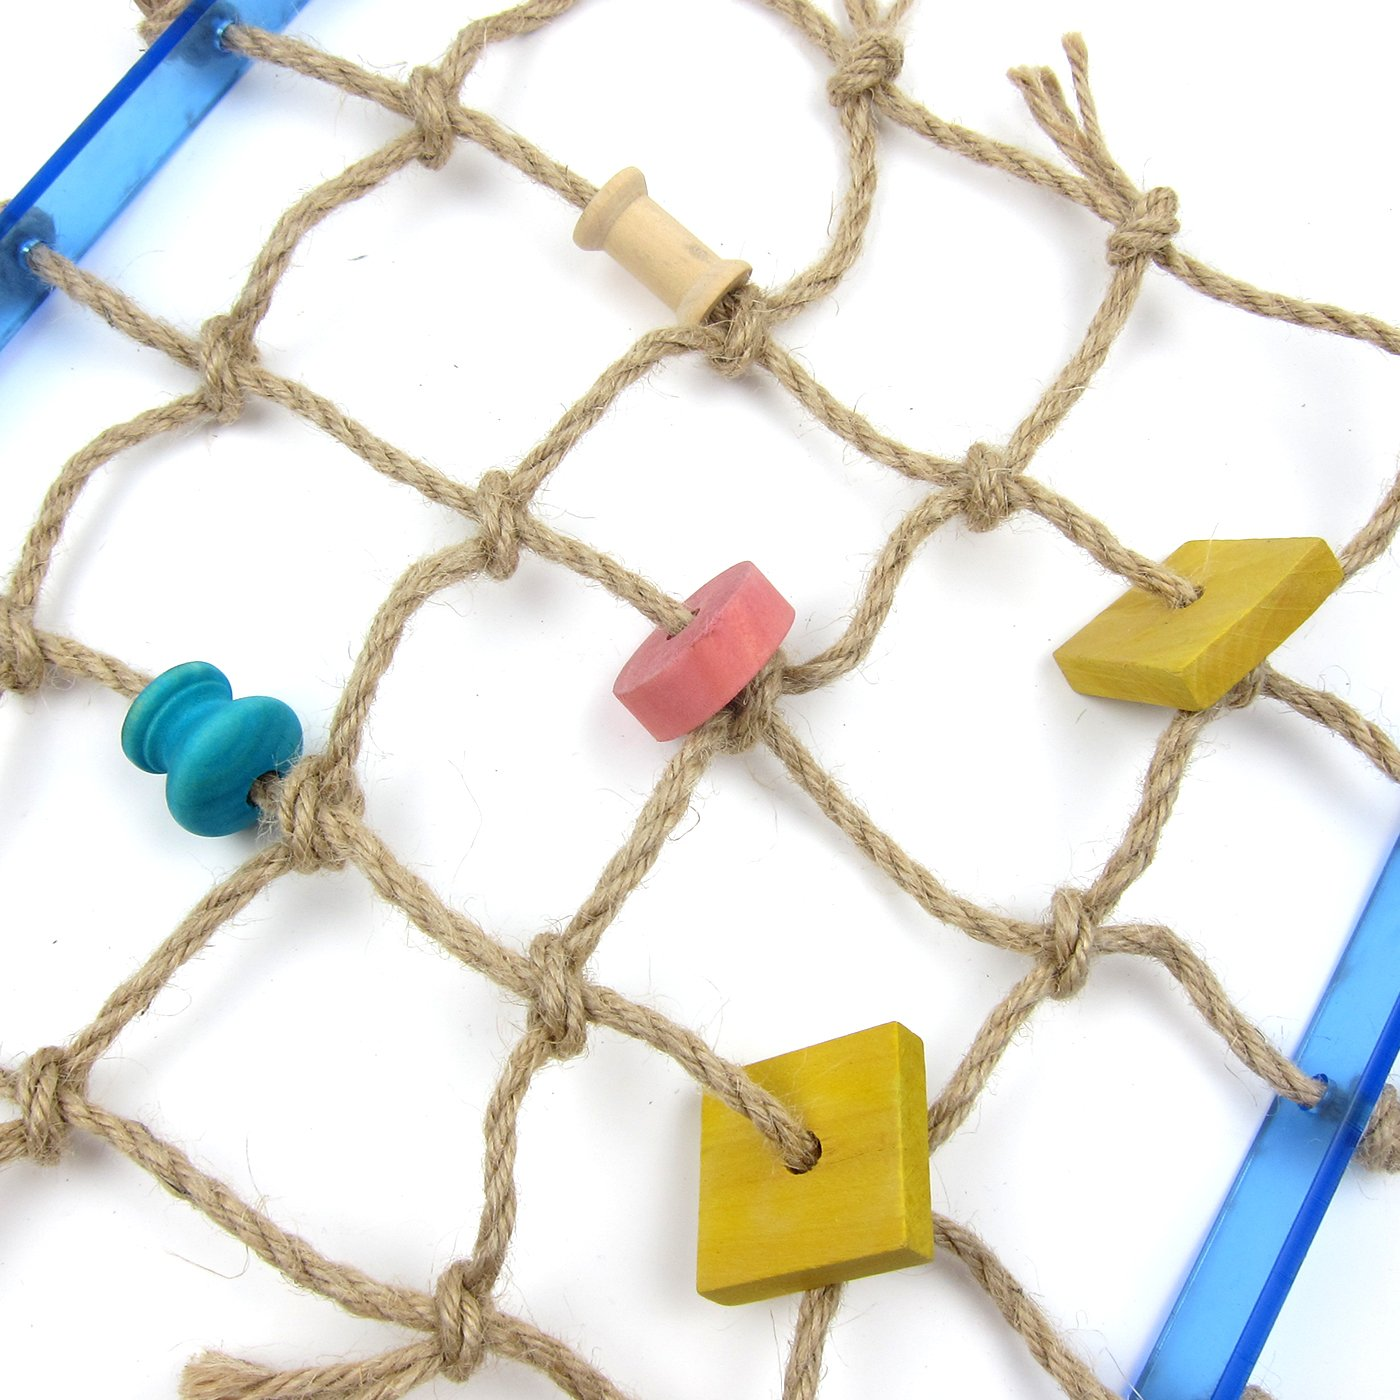 Alfie Pet by Petoga Couture - Kaelin Hanging Rope Ladder Toy for Birds by Alfie (Image #5)